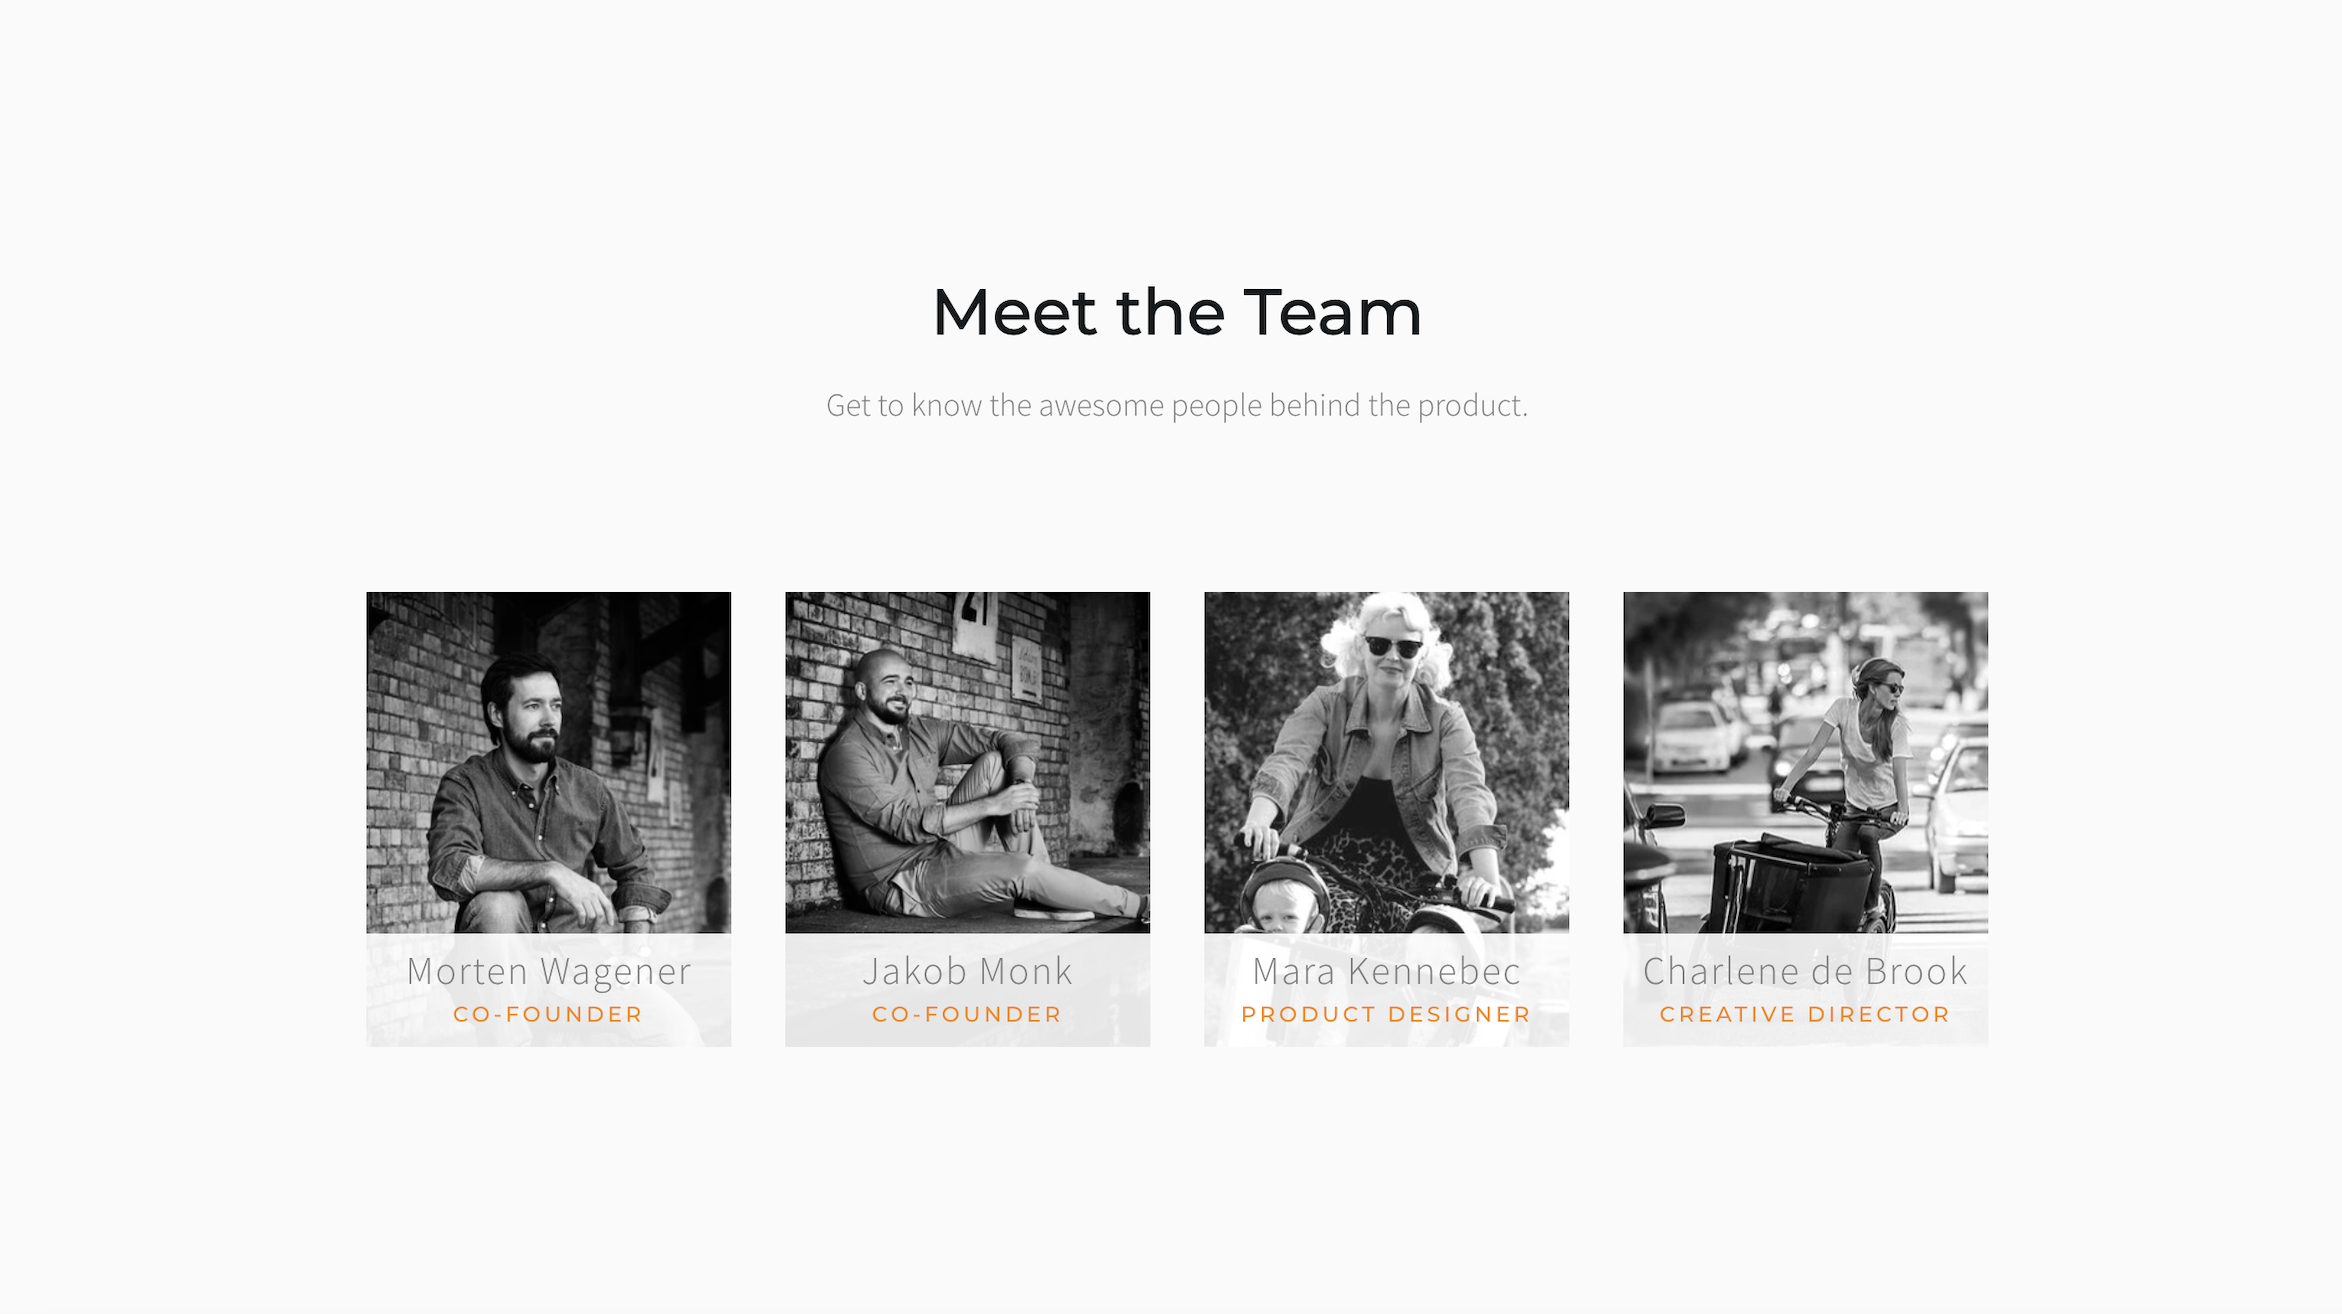 meet_the_team_page_in_launch_bold_demo_with_headings.png